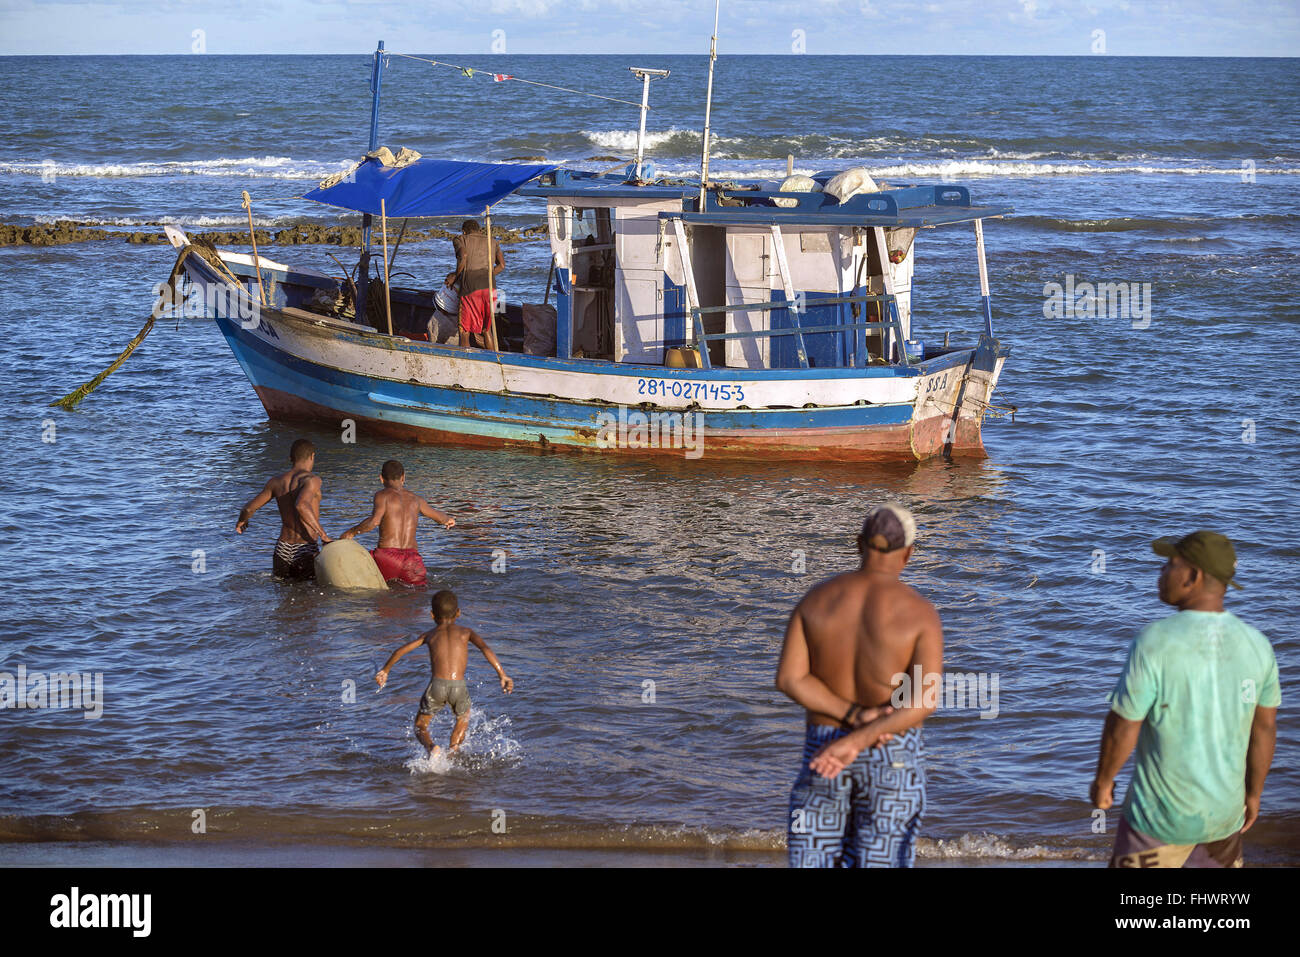 Fishing boats unloading lobsters in the Subaúma Beach - Stock Image